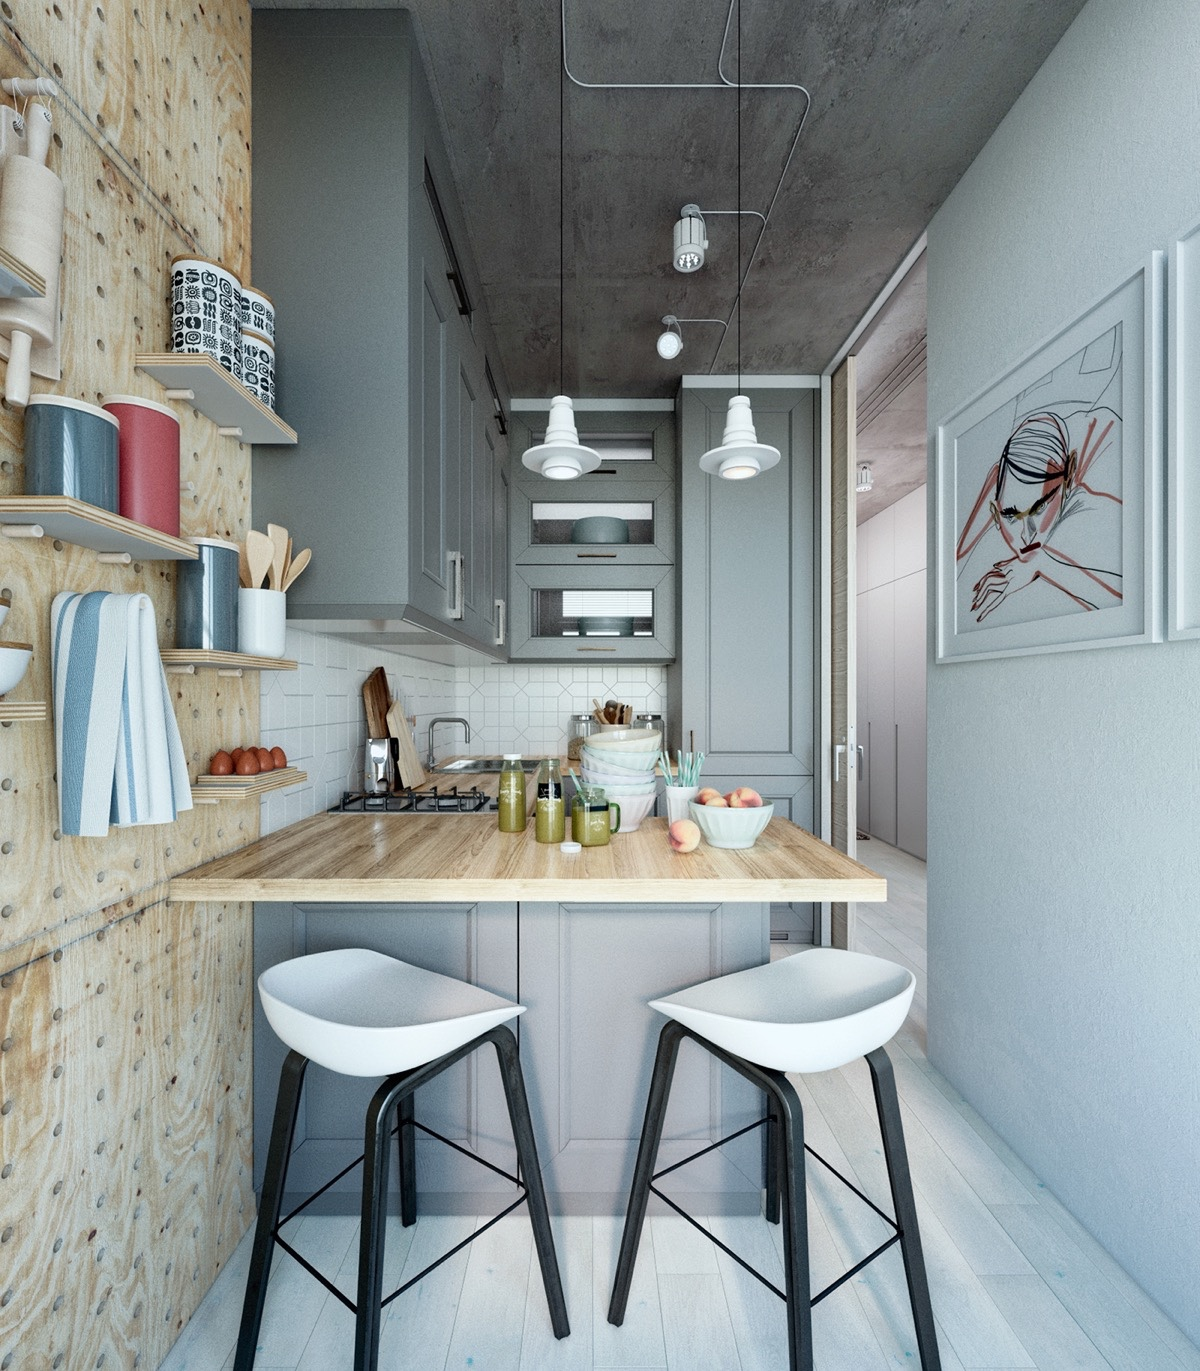 Interior Design For Kitchen For Flats: Two Takes On The Same Super-Small Apartment